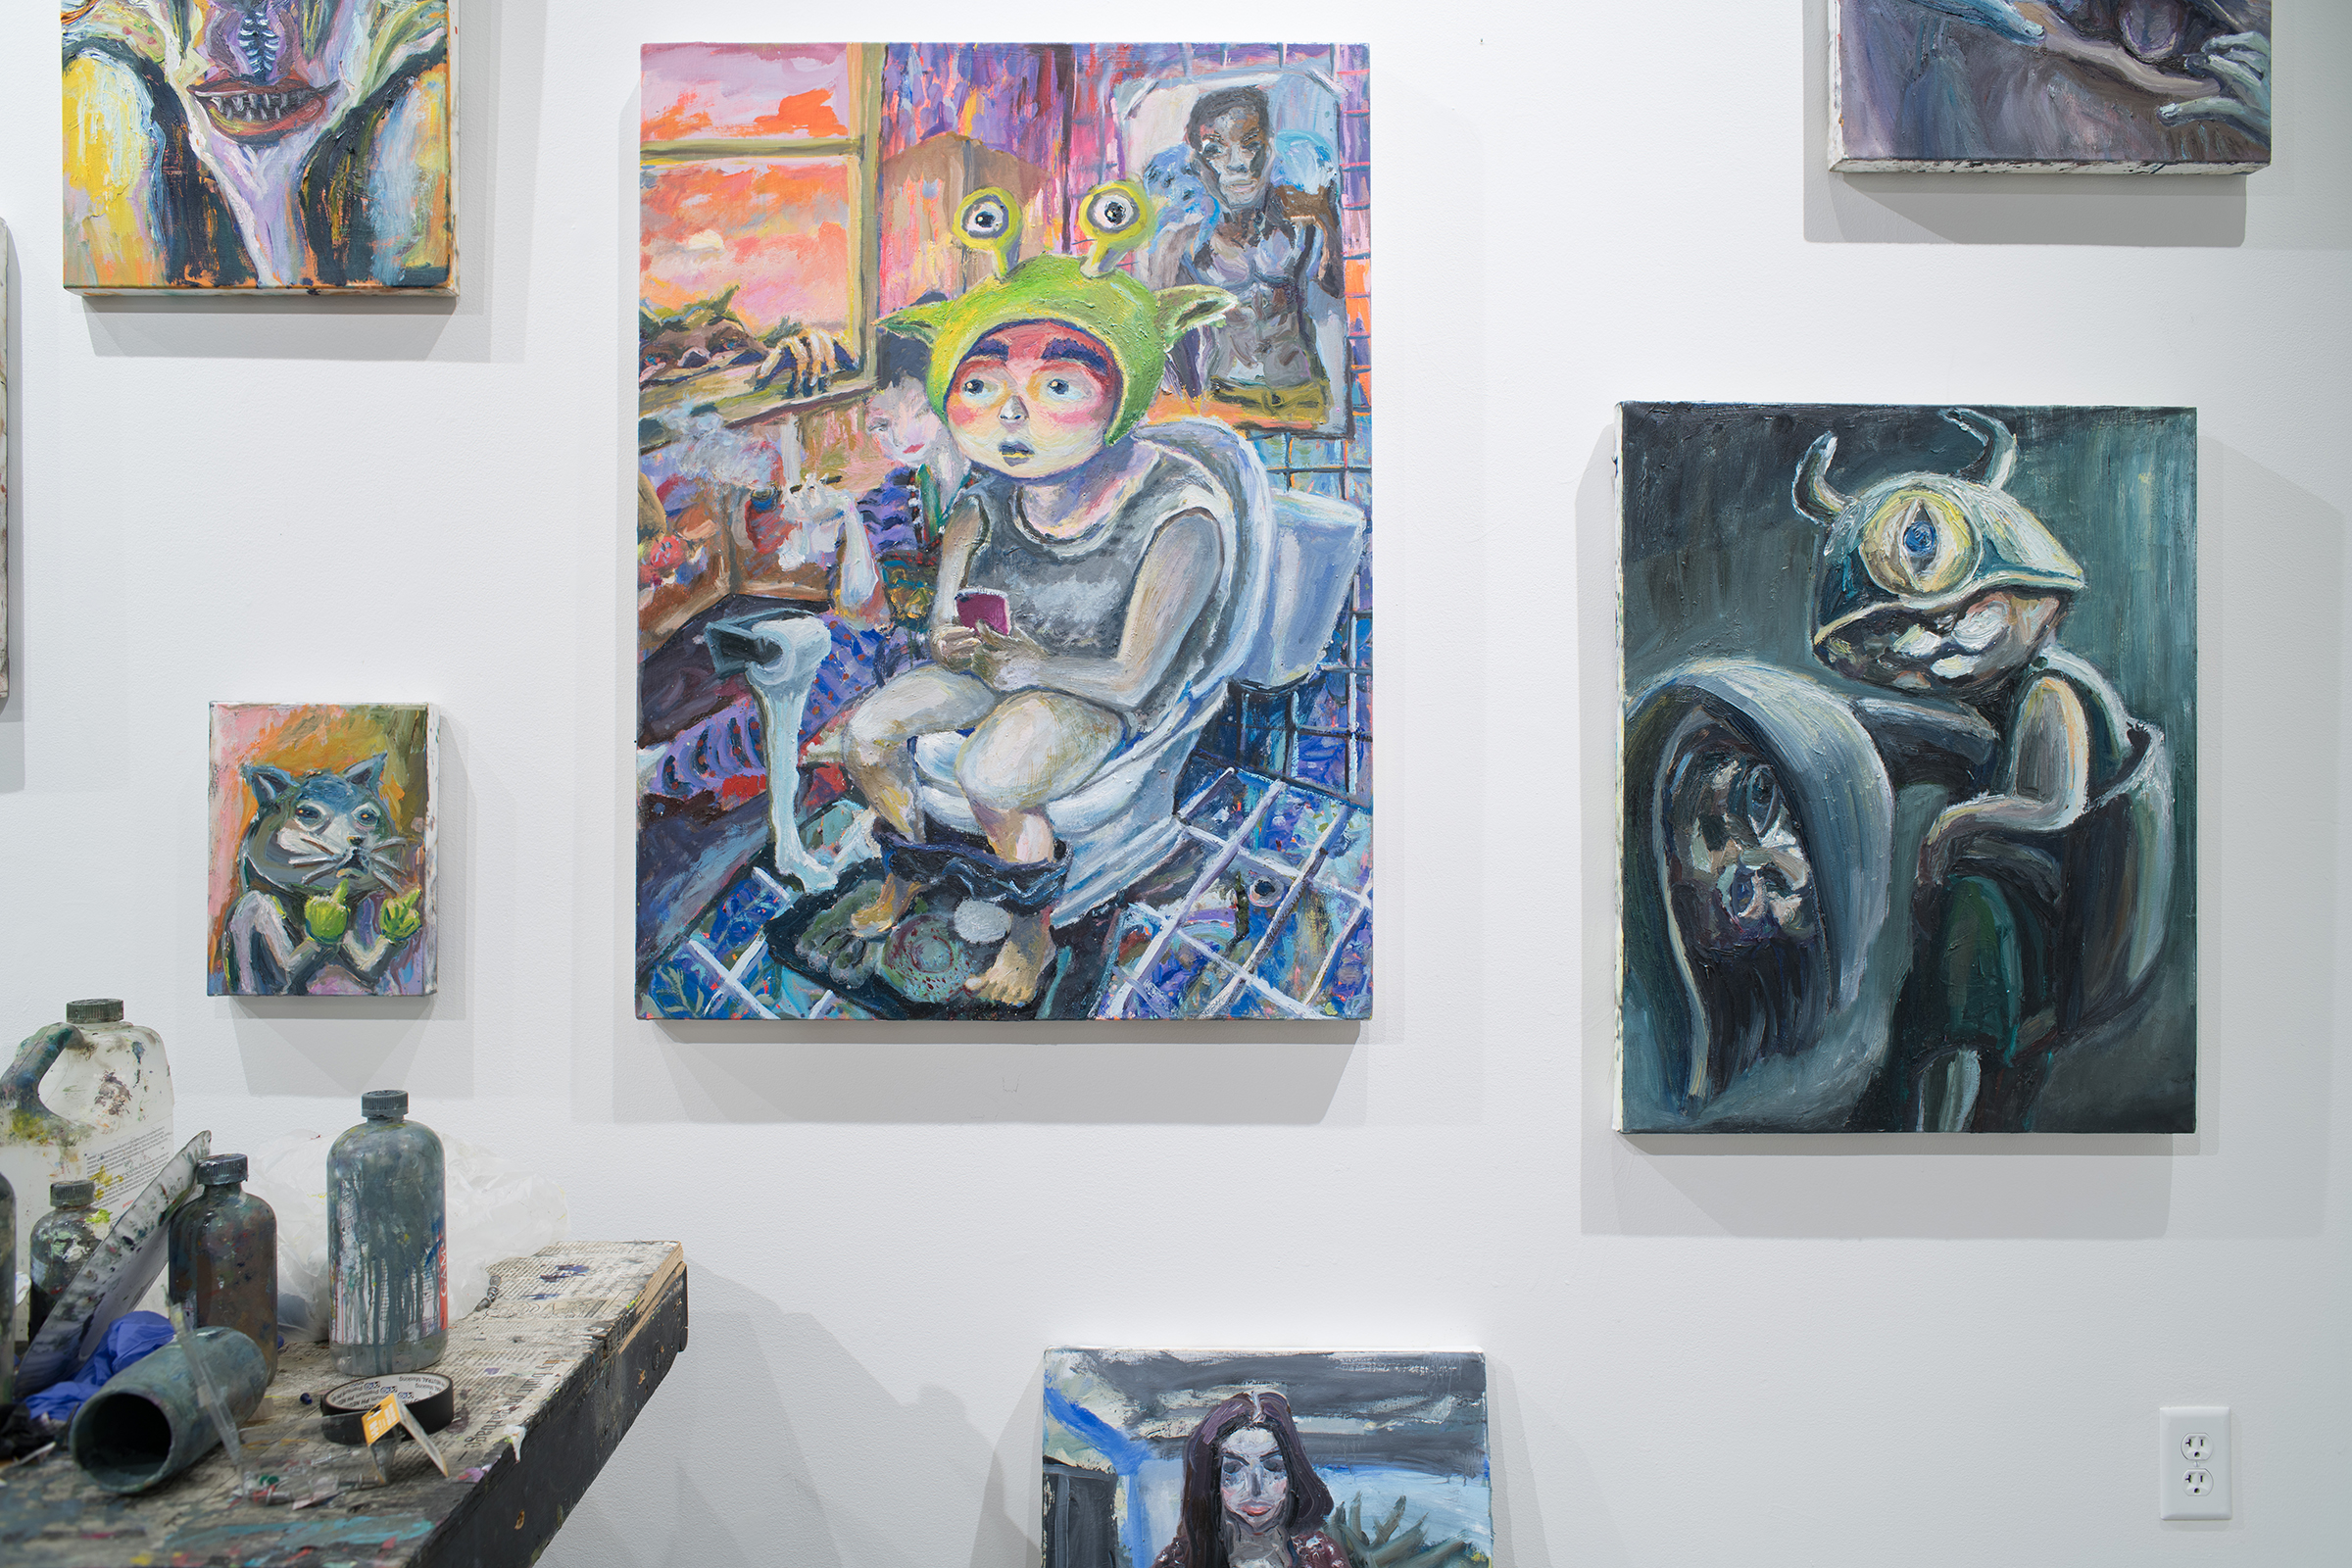 Installation view of A Cosmology of Monsters Master of Fine Arts Exhibition by Tzu Lun Hwang in the Art Lofts Gallery. Photography by Kyle Herrera.